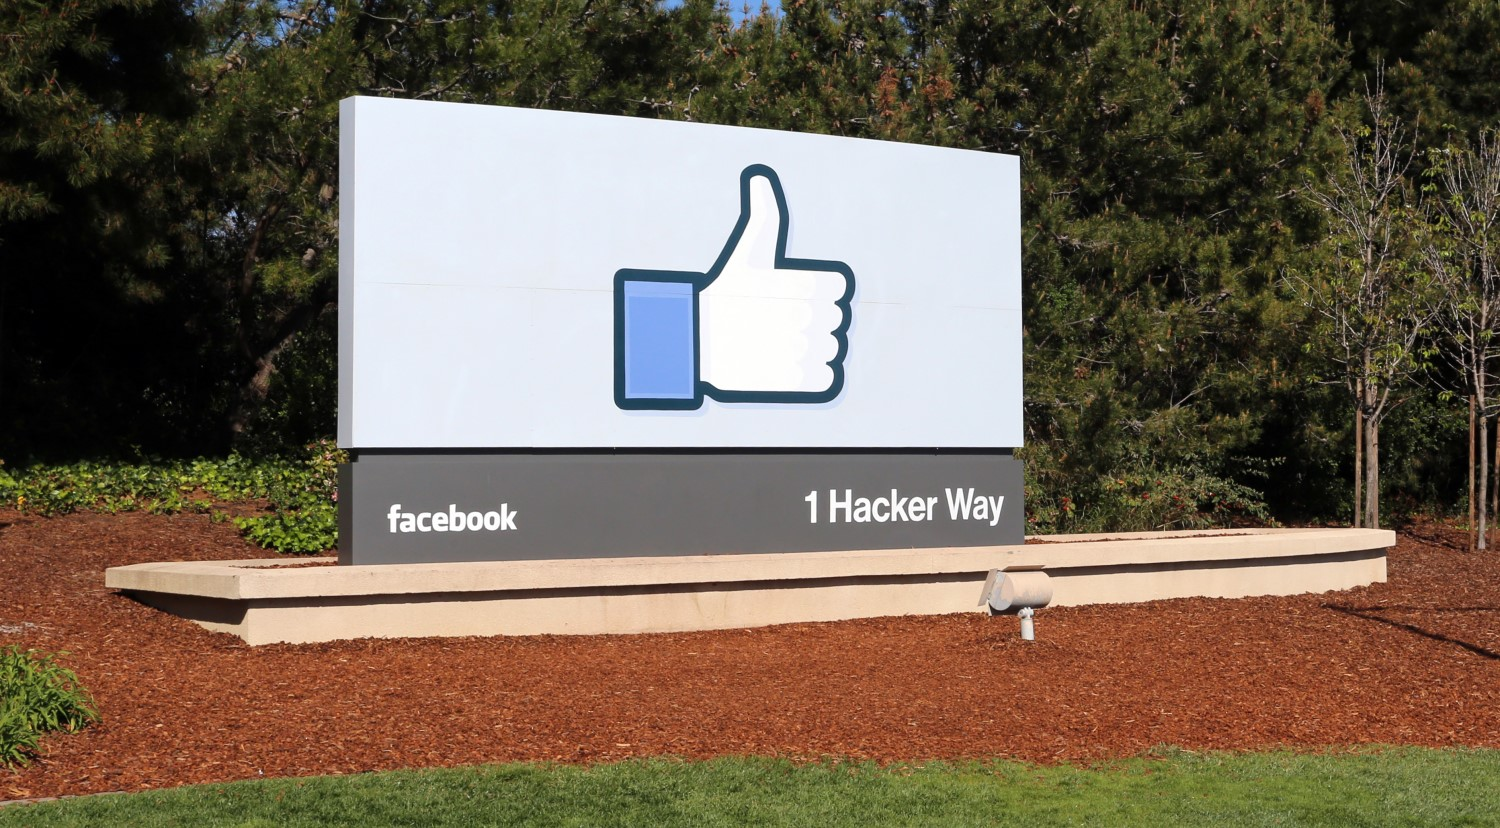 Facebook Is Hiring 5 New Staff Members for Its Blockchain Team - CoinDesk